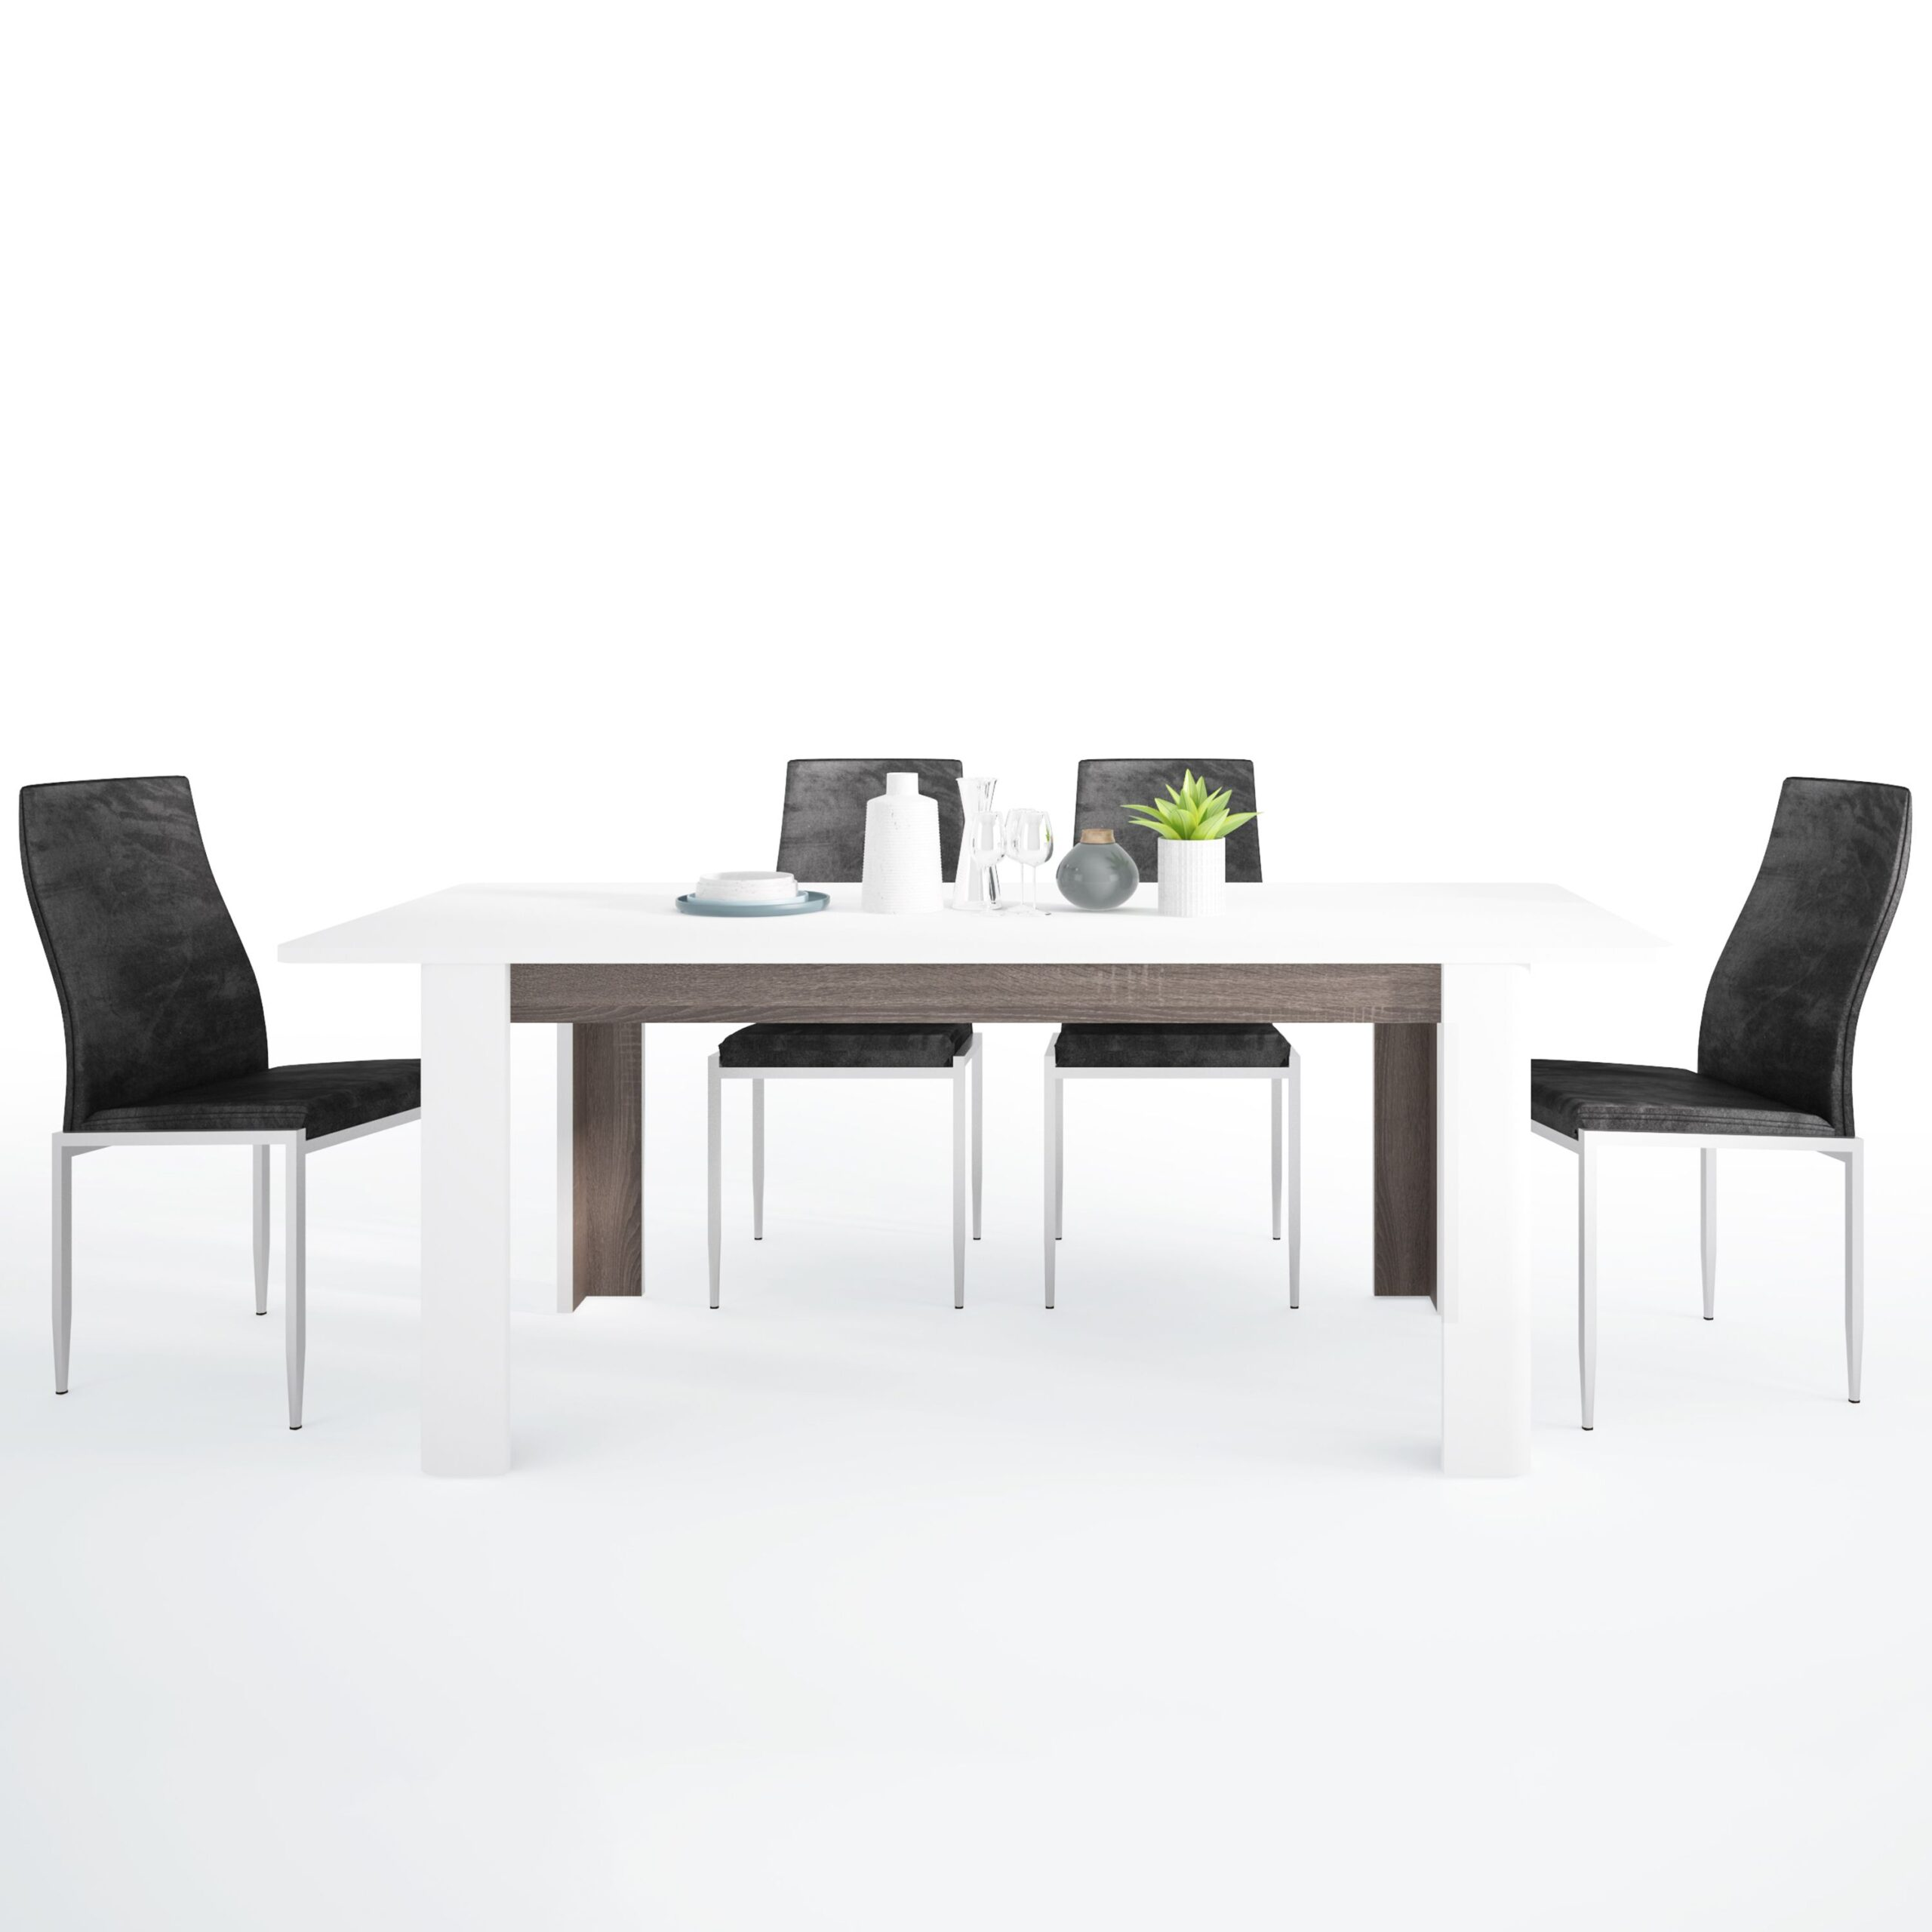 Seals Dining set package Seals Living Extending Dining Table + 4 Lillie High Back Chair Black